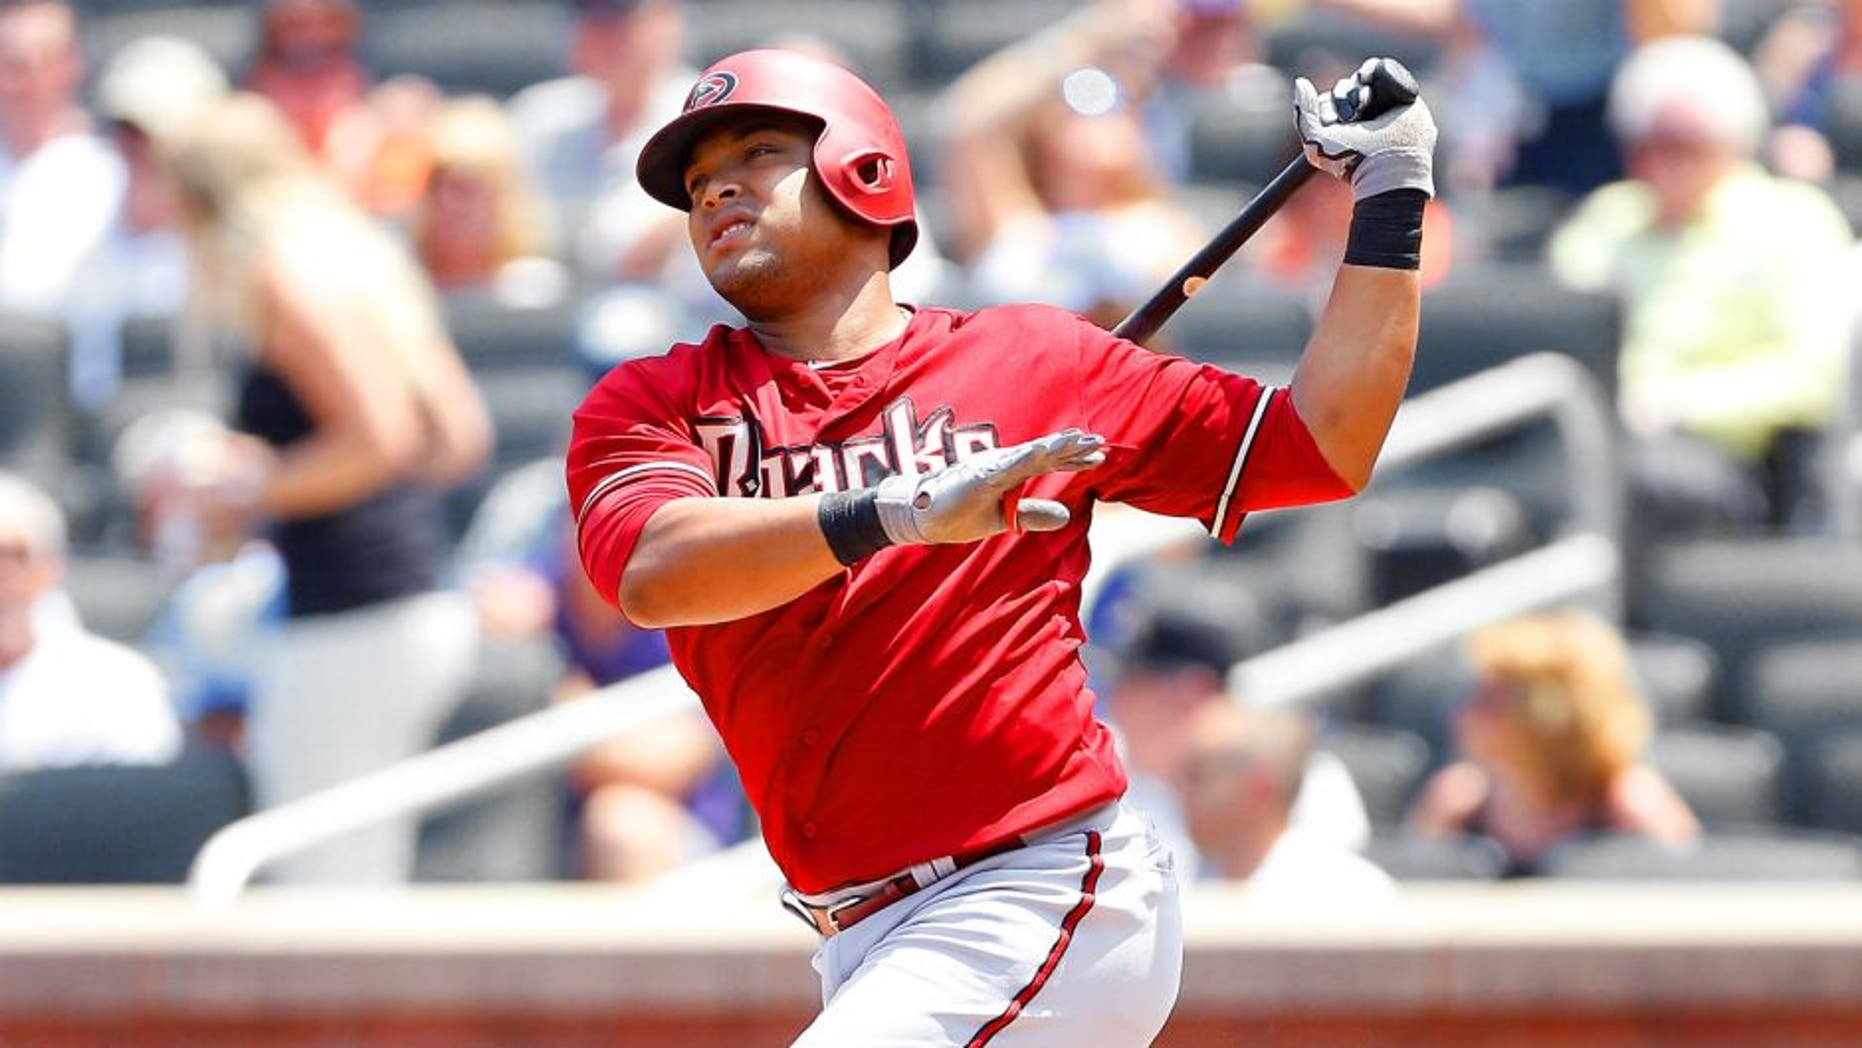 NEW YORK, NY - JULY 12: Yasmany Tomas #24 of the Arizona Diamondbacks in action against the New York Mets at Citi Field on July 12, 2015 in the Flushing neighborhood of the Queens borough of New York City. The Mets defeated the Diamondbacks 5-3. (Photo by Jim McIsaac/Getty Images)